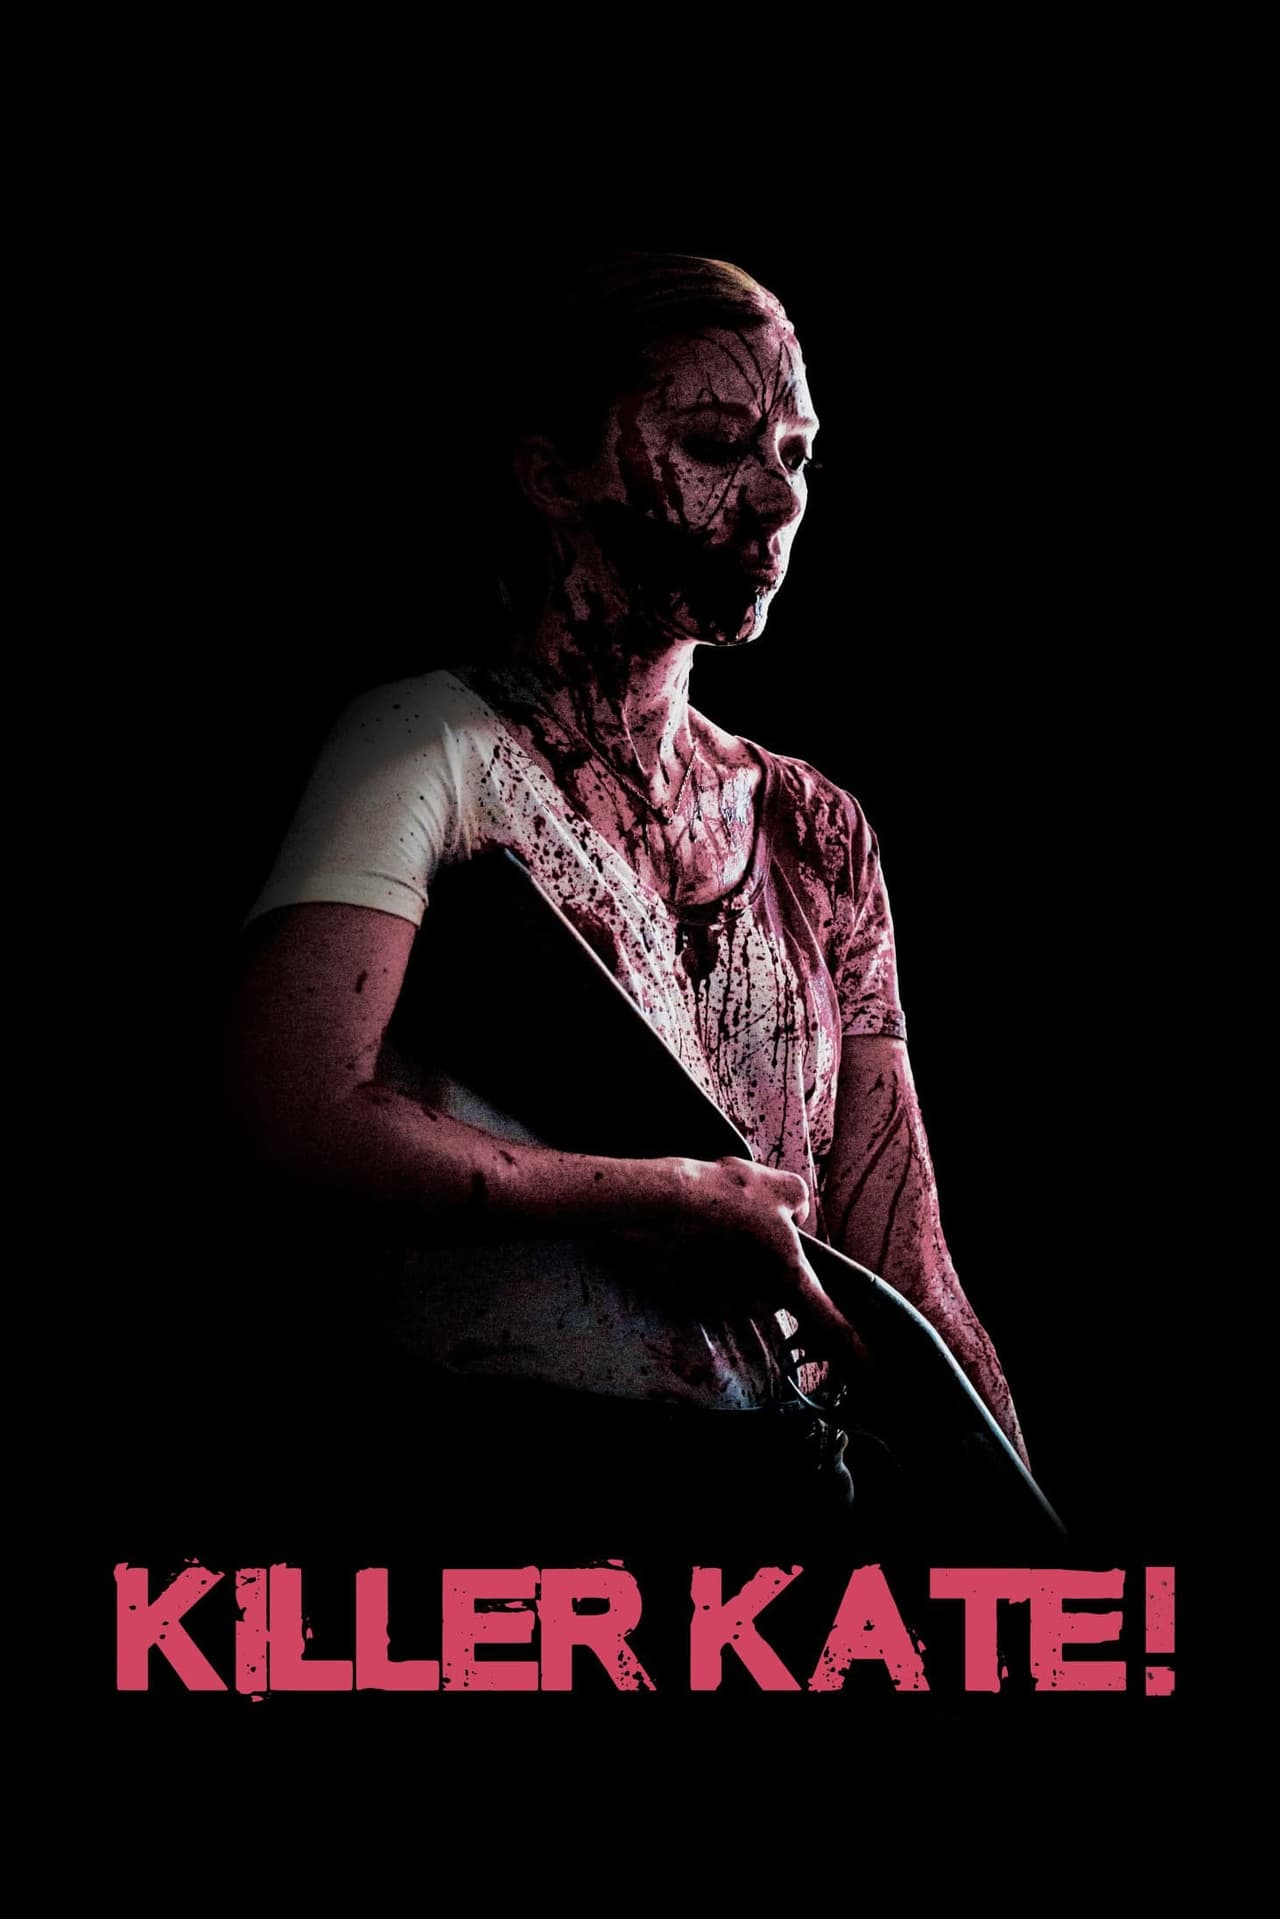 Watch Killer Kate! Online